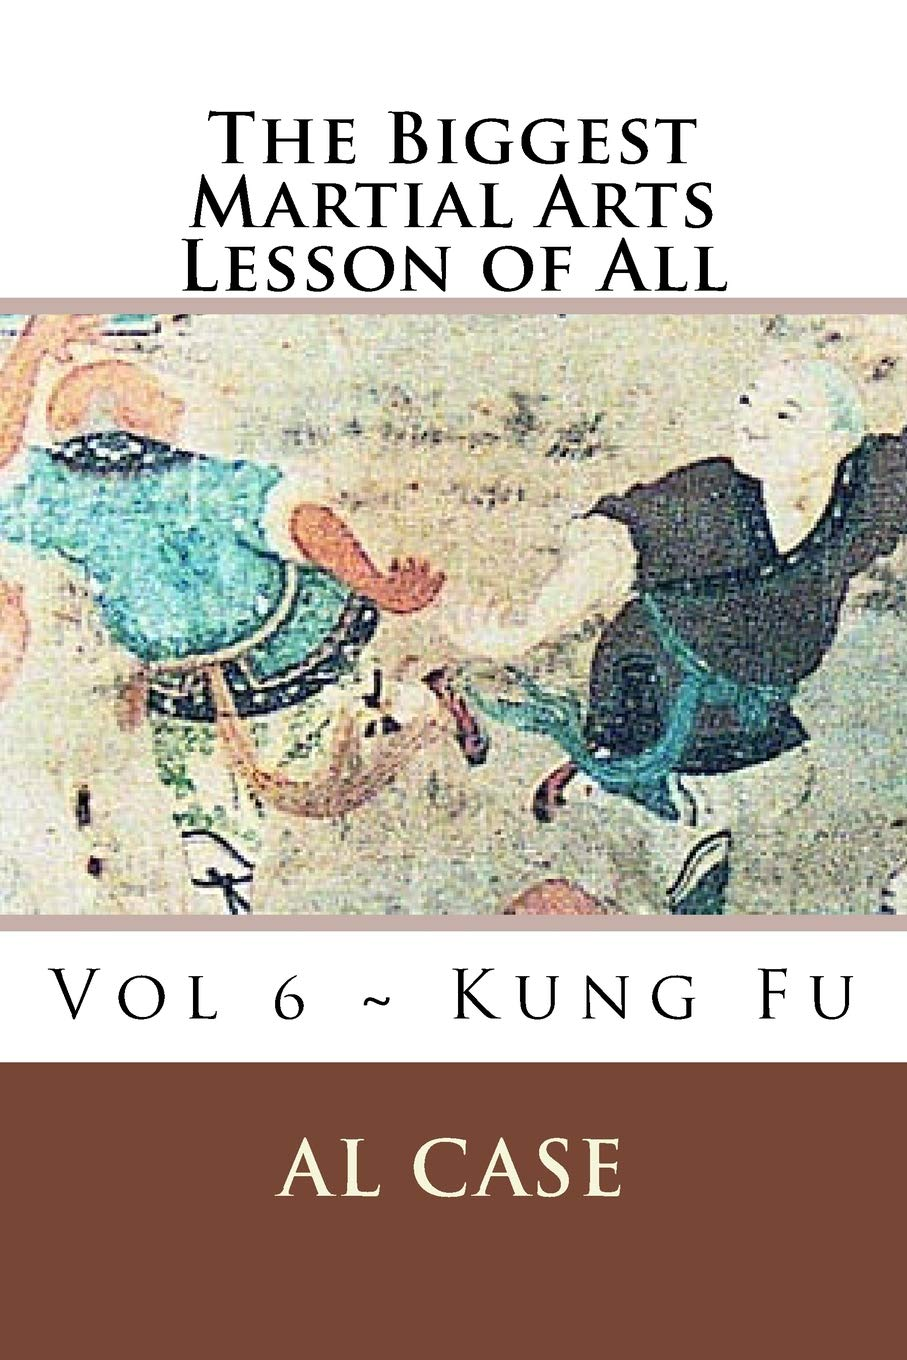 The biggest martial arts lesson of all